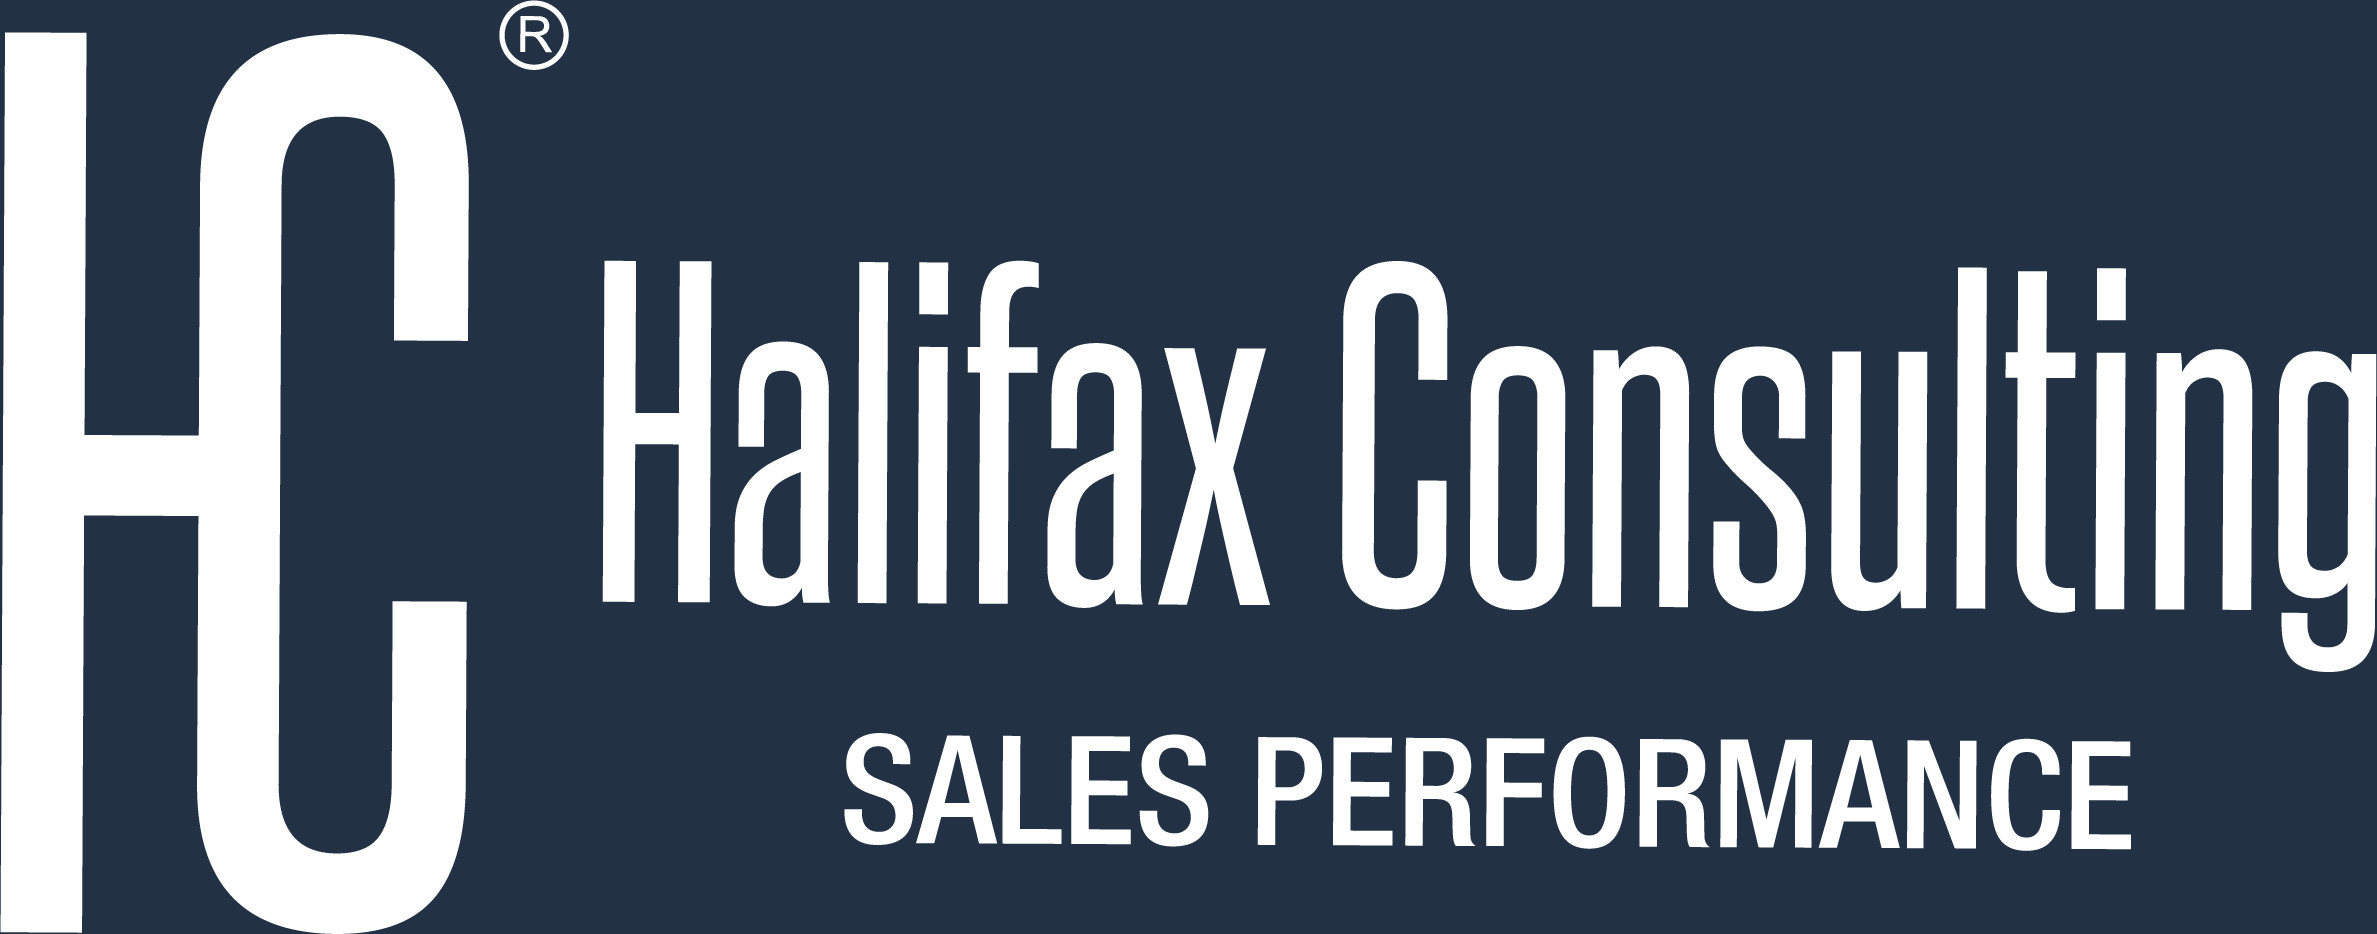 Formations en ligne Halifax Consulting